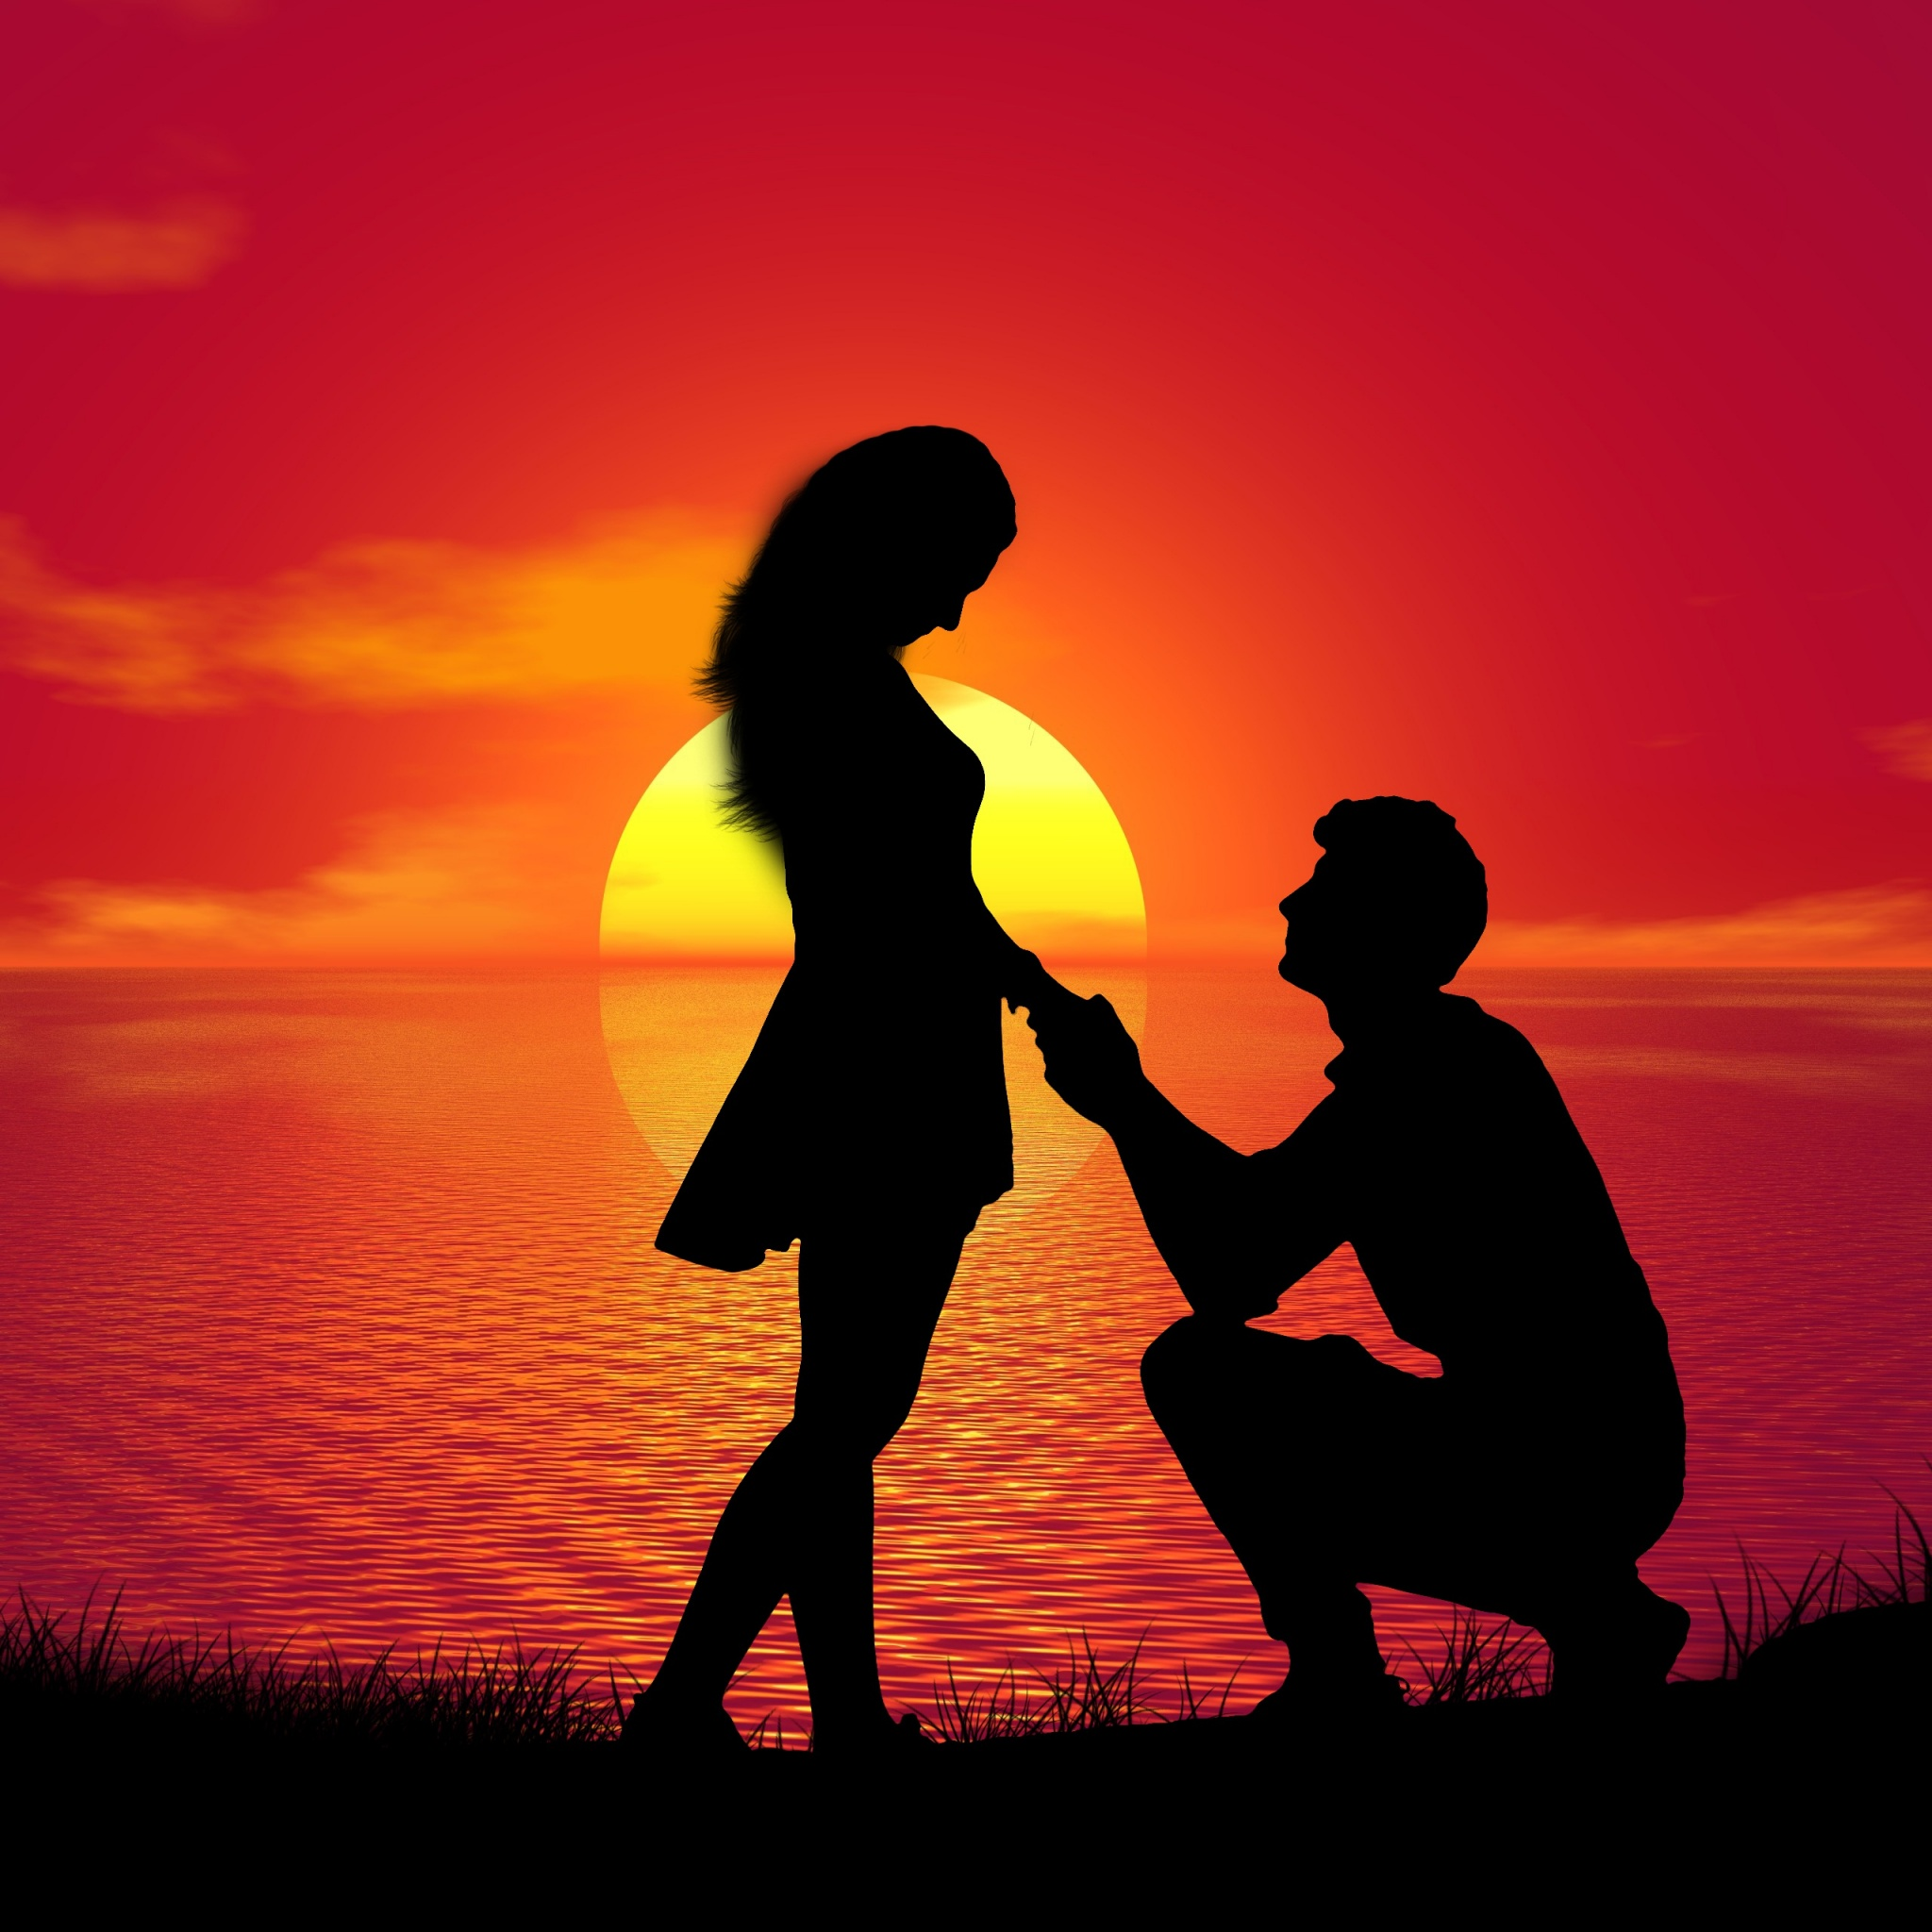 Couple 4K Wallpaper, Sunset, Proposal, Silhouette